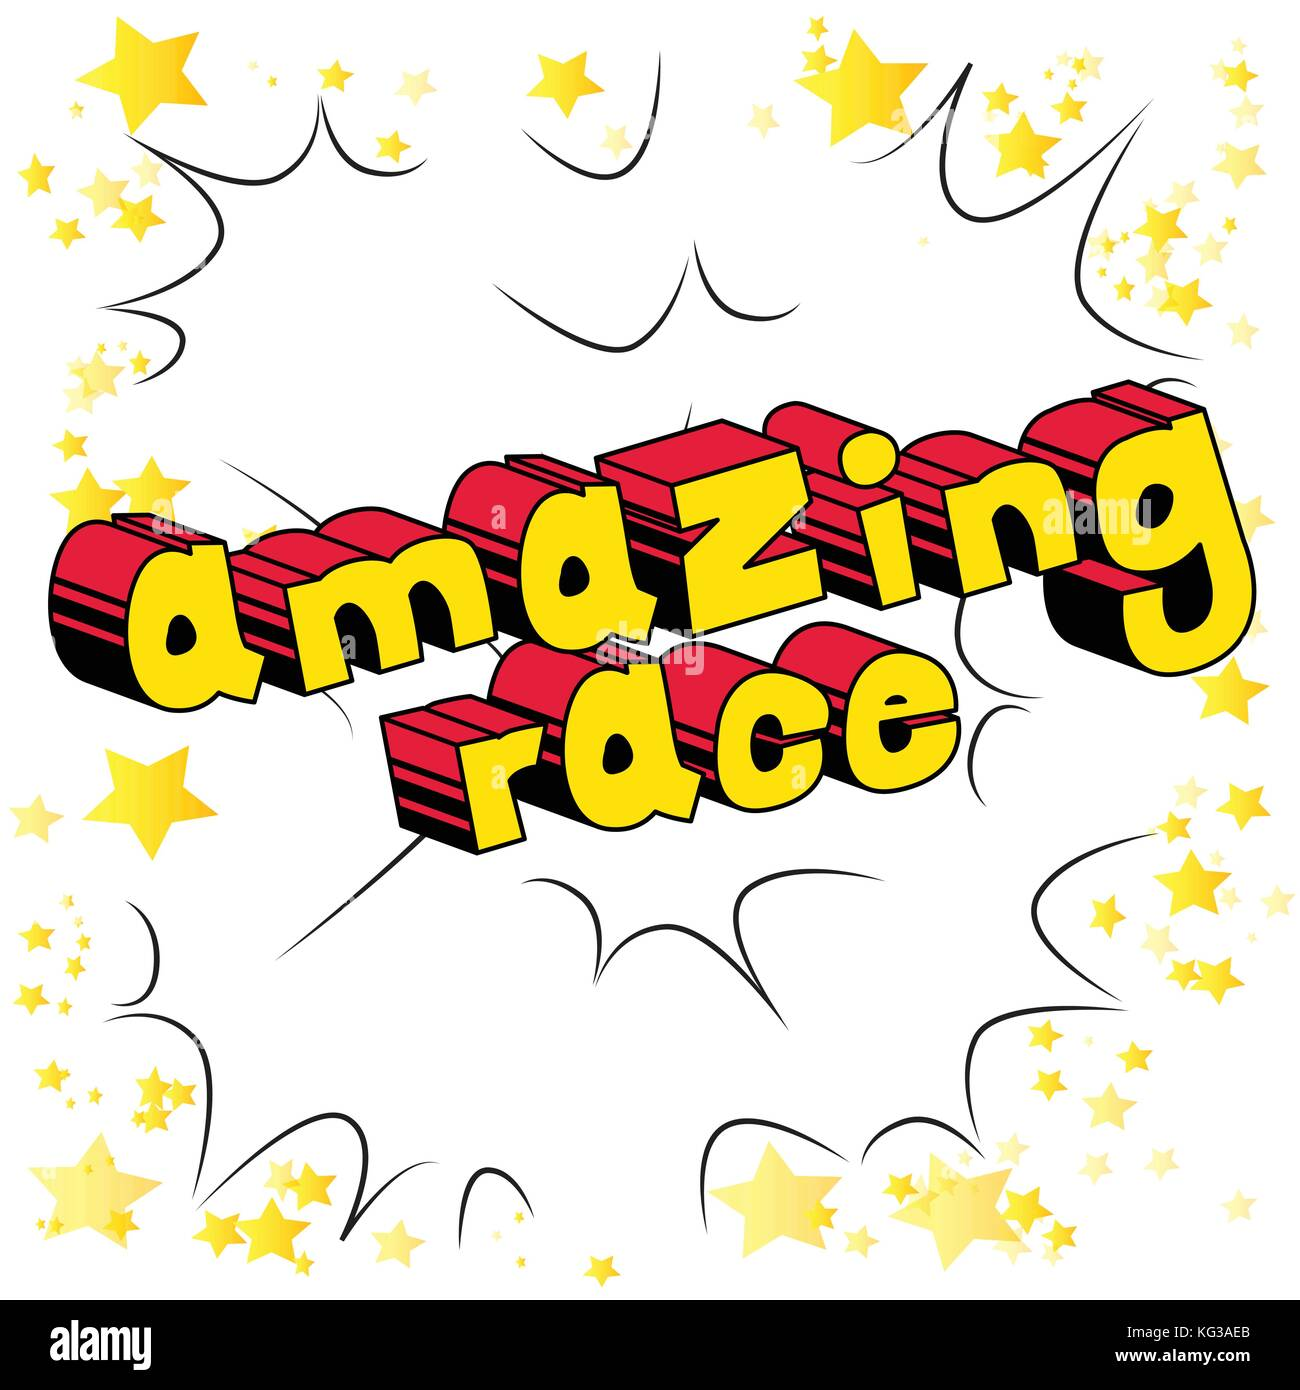 The Amazing Race High Resolution Stock Photography And Images Alamy